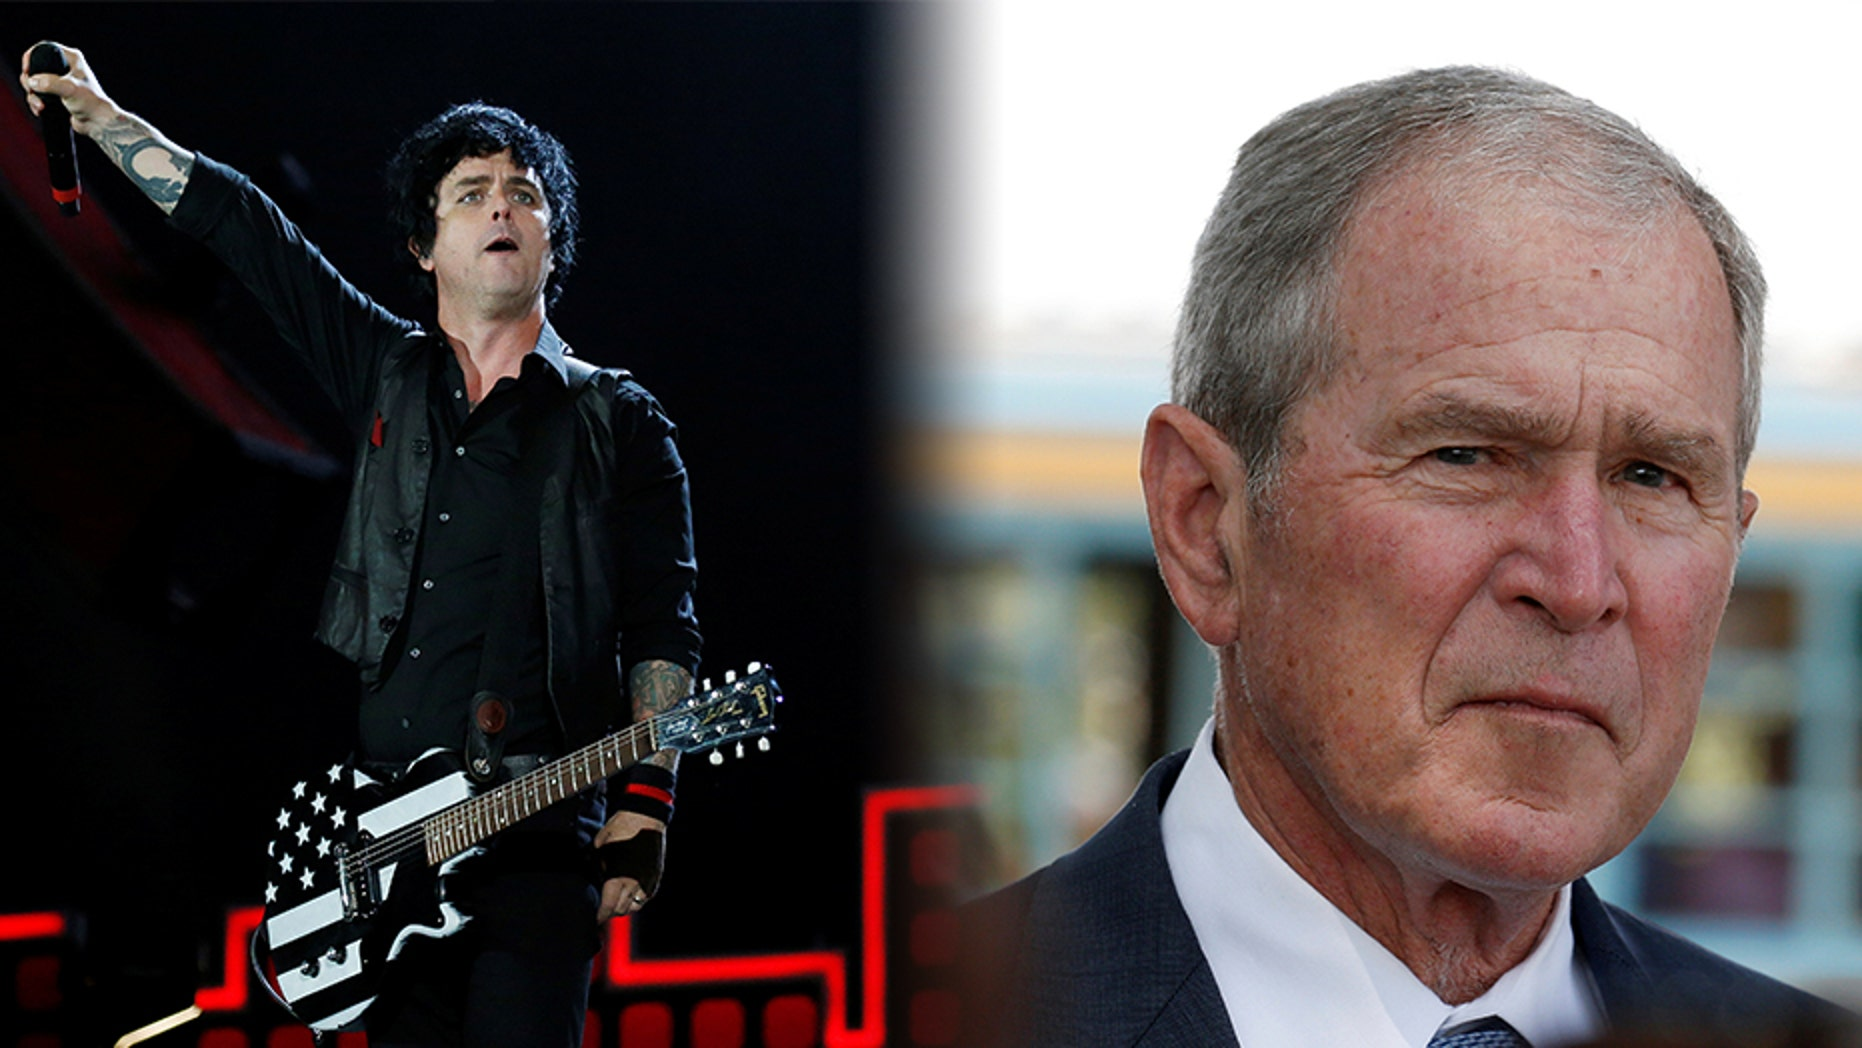 """The Washington Post cited a satirical website that claimed the Green Day song """"American Idiot"""" was about President George W. Bush."""